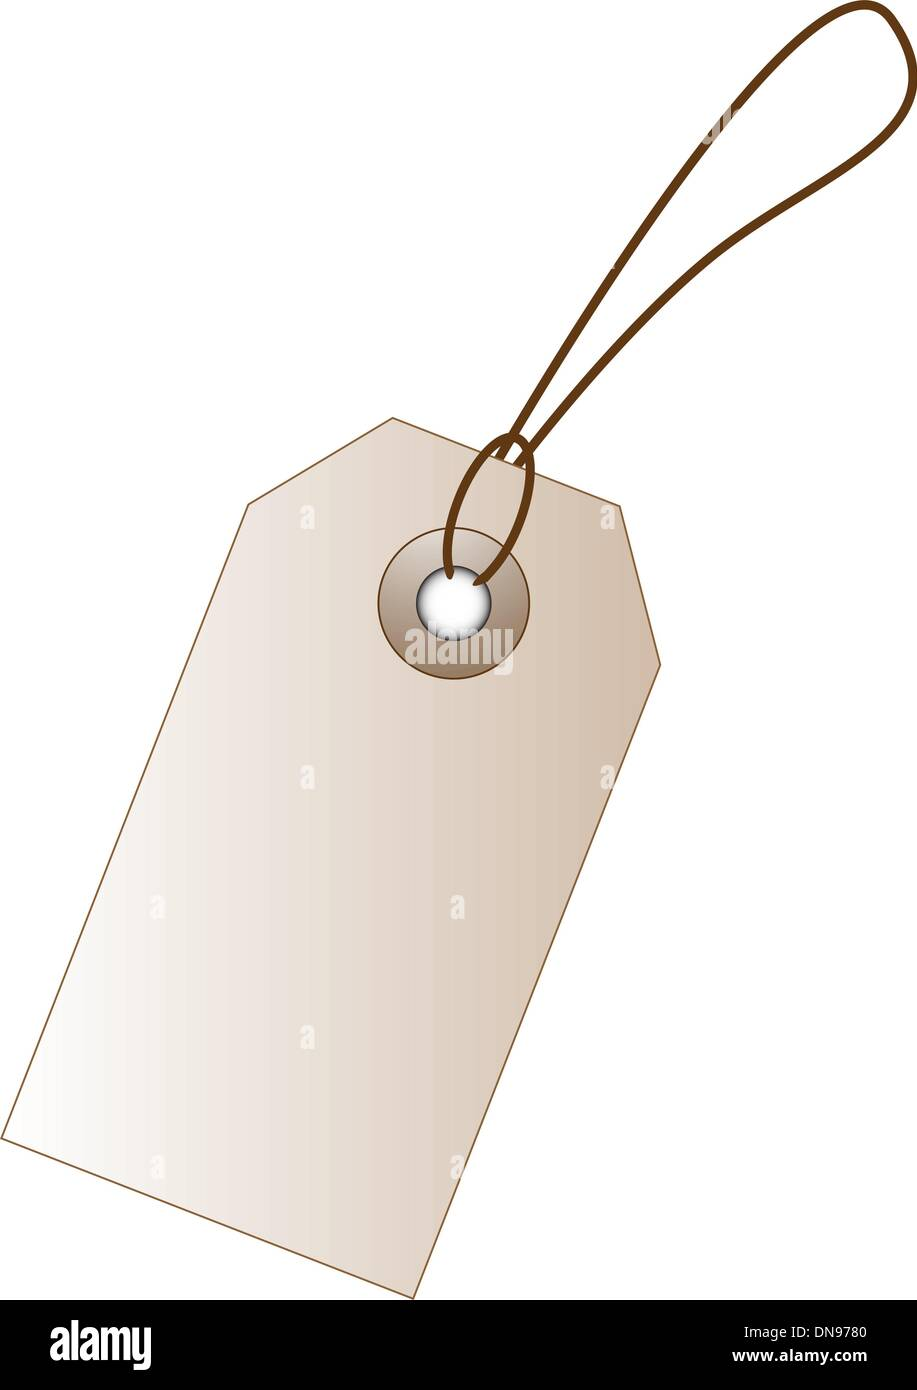 Vector price tag with empty space for marketing design. - Stock Image